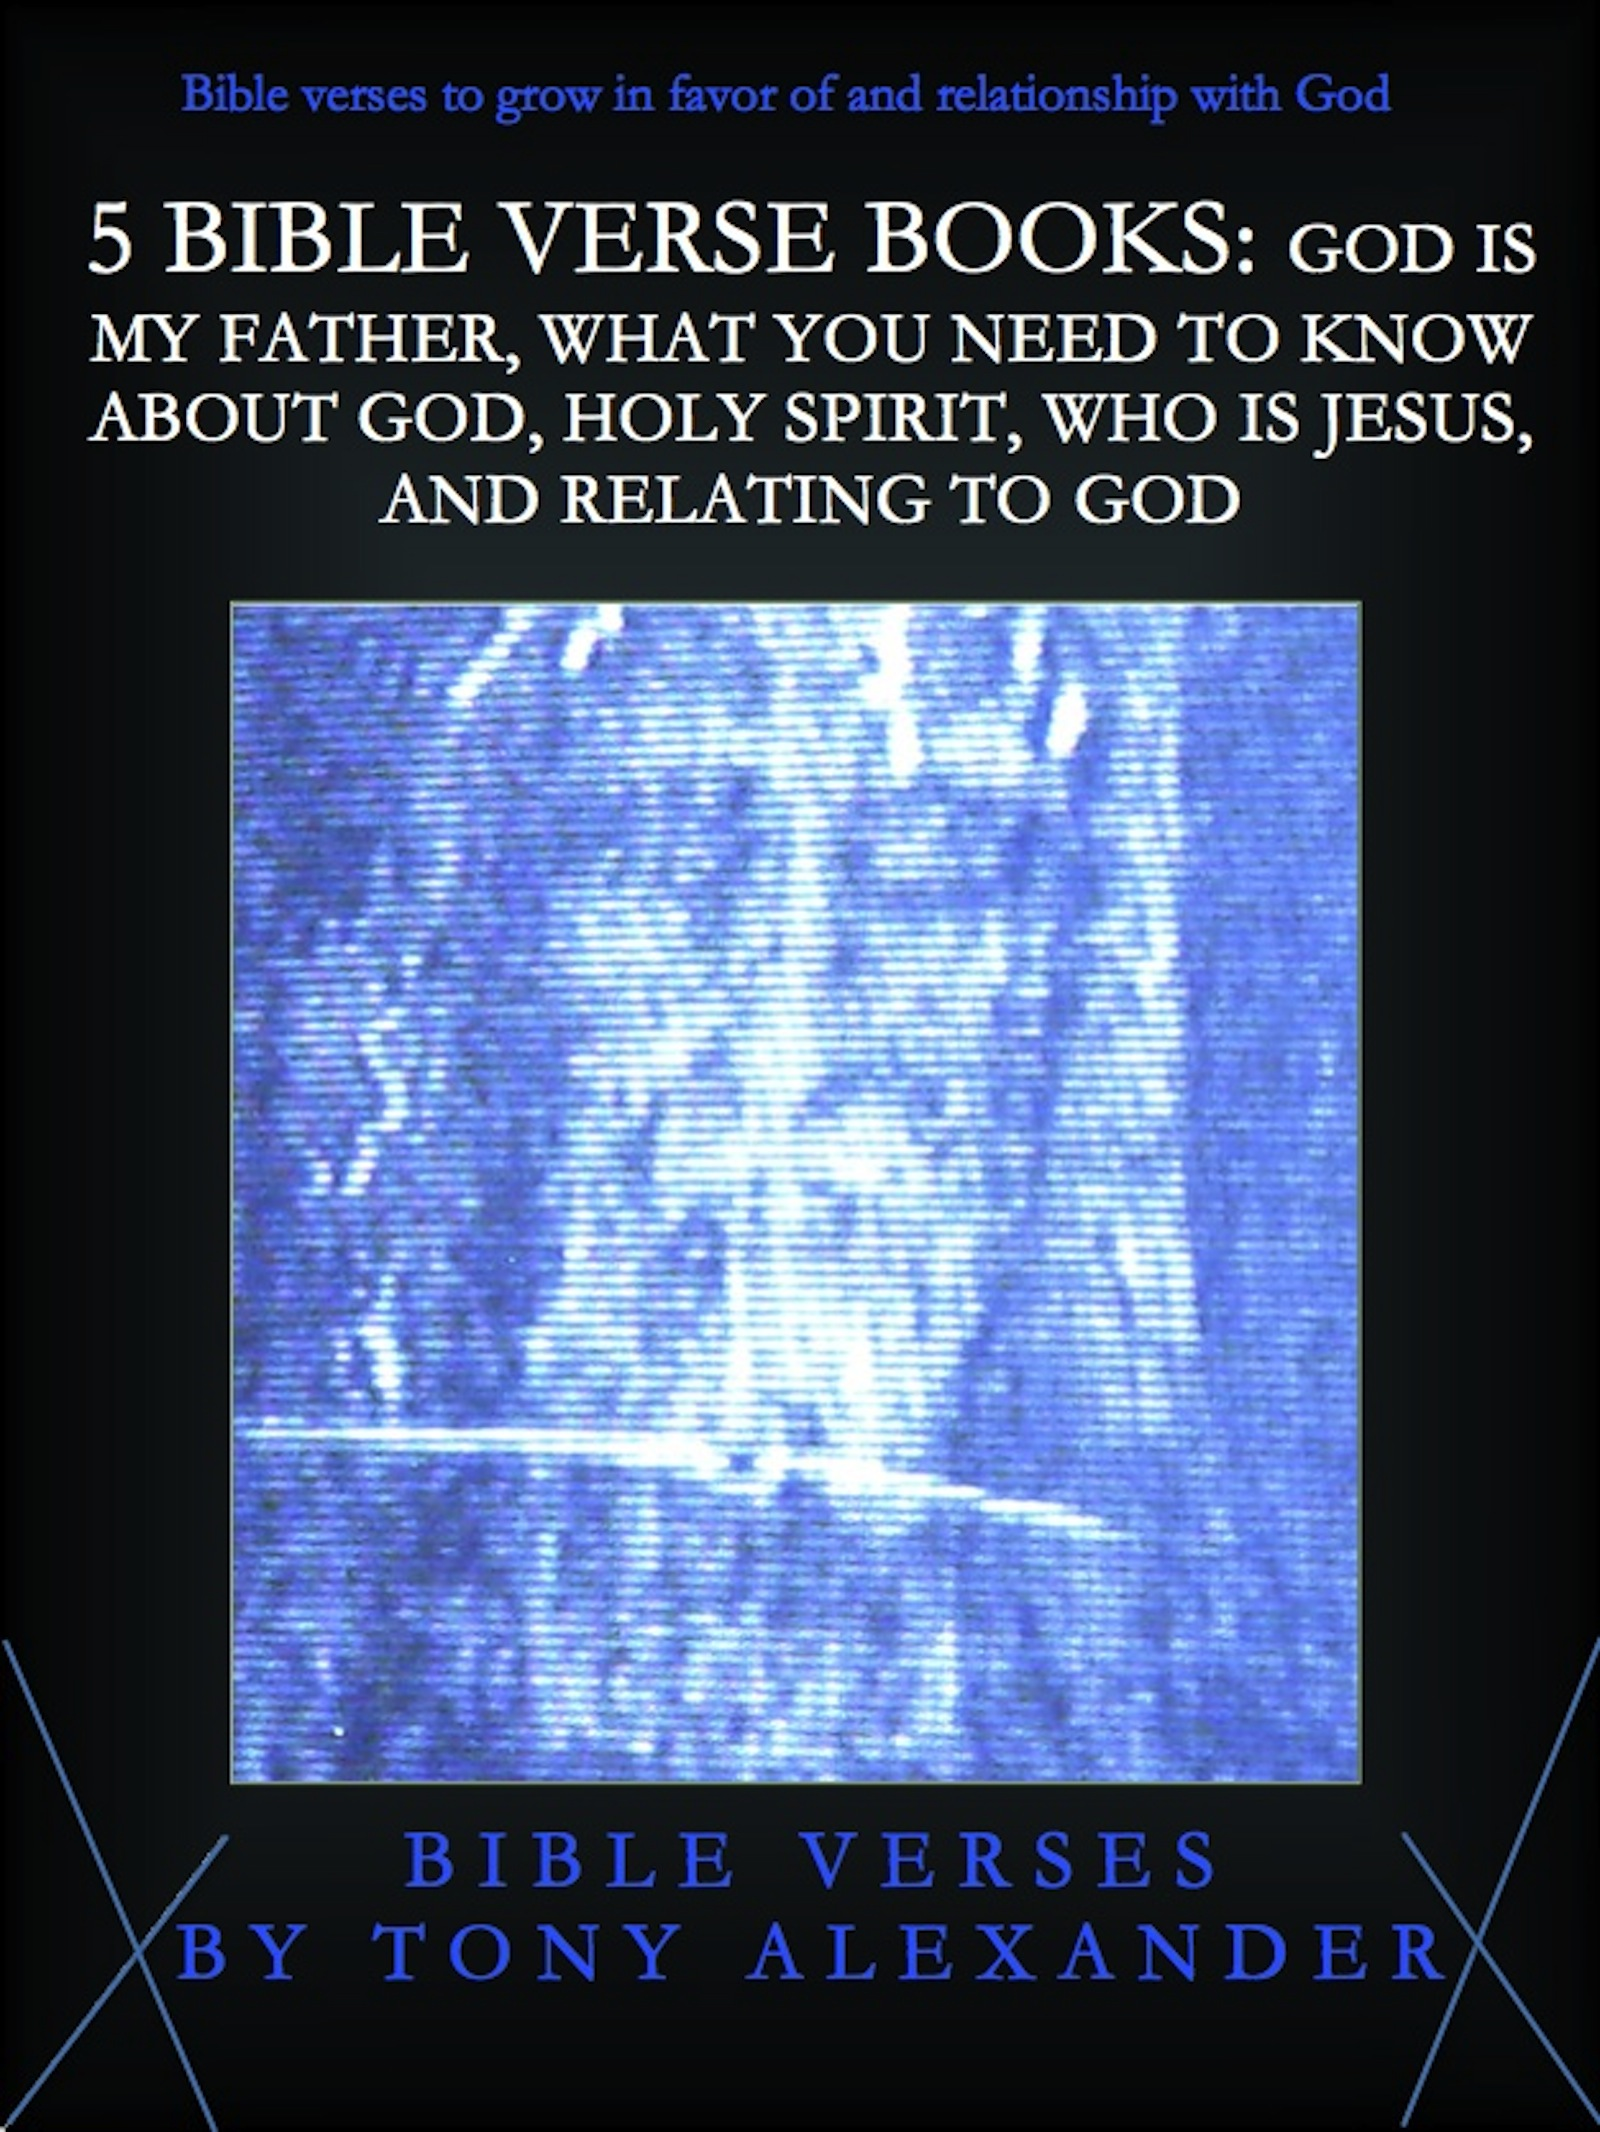 5 Bible Verse Books God Is My Father What You Need To Know About God Holy Spirit Who Is Jesus And Relating To God An Ebook By Tony Alexander